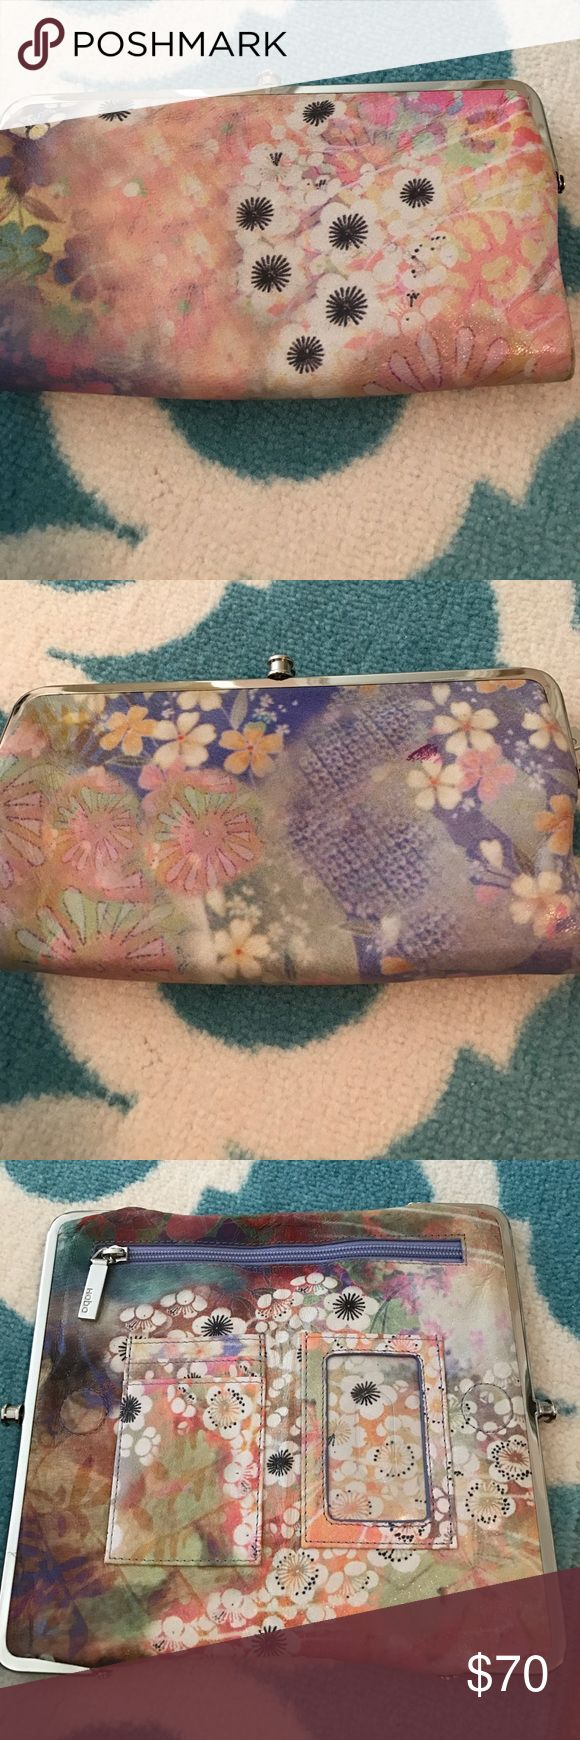 Hobo brand wallet Large wallet with lots of pockets! Could be used as a clutch. Flower pattern with light pink and purple and yellow HOBO Bags Wallets